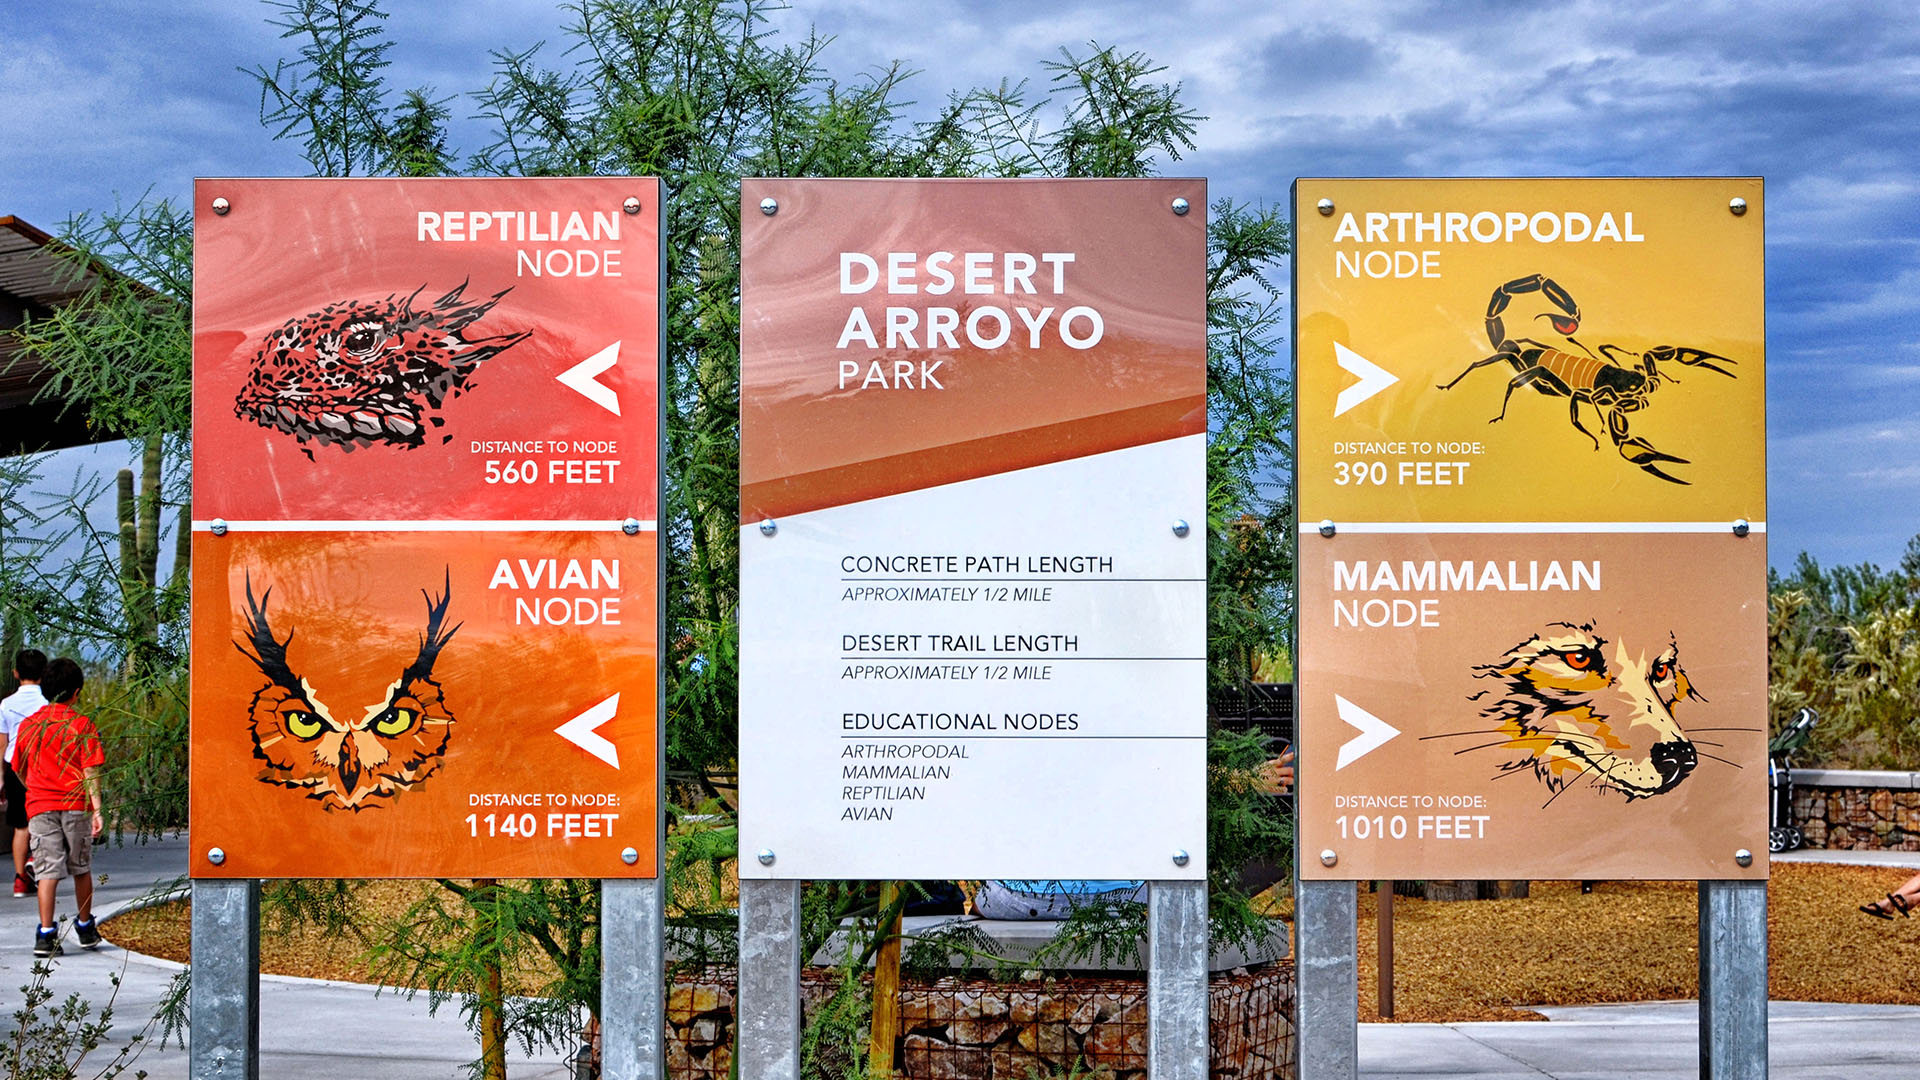 Colorful wayfinding signage directs visitors